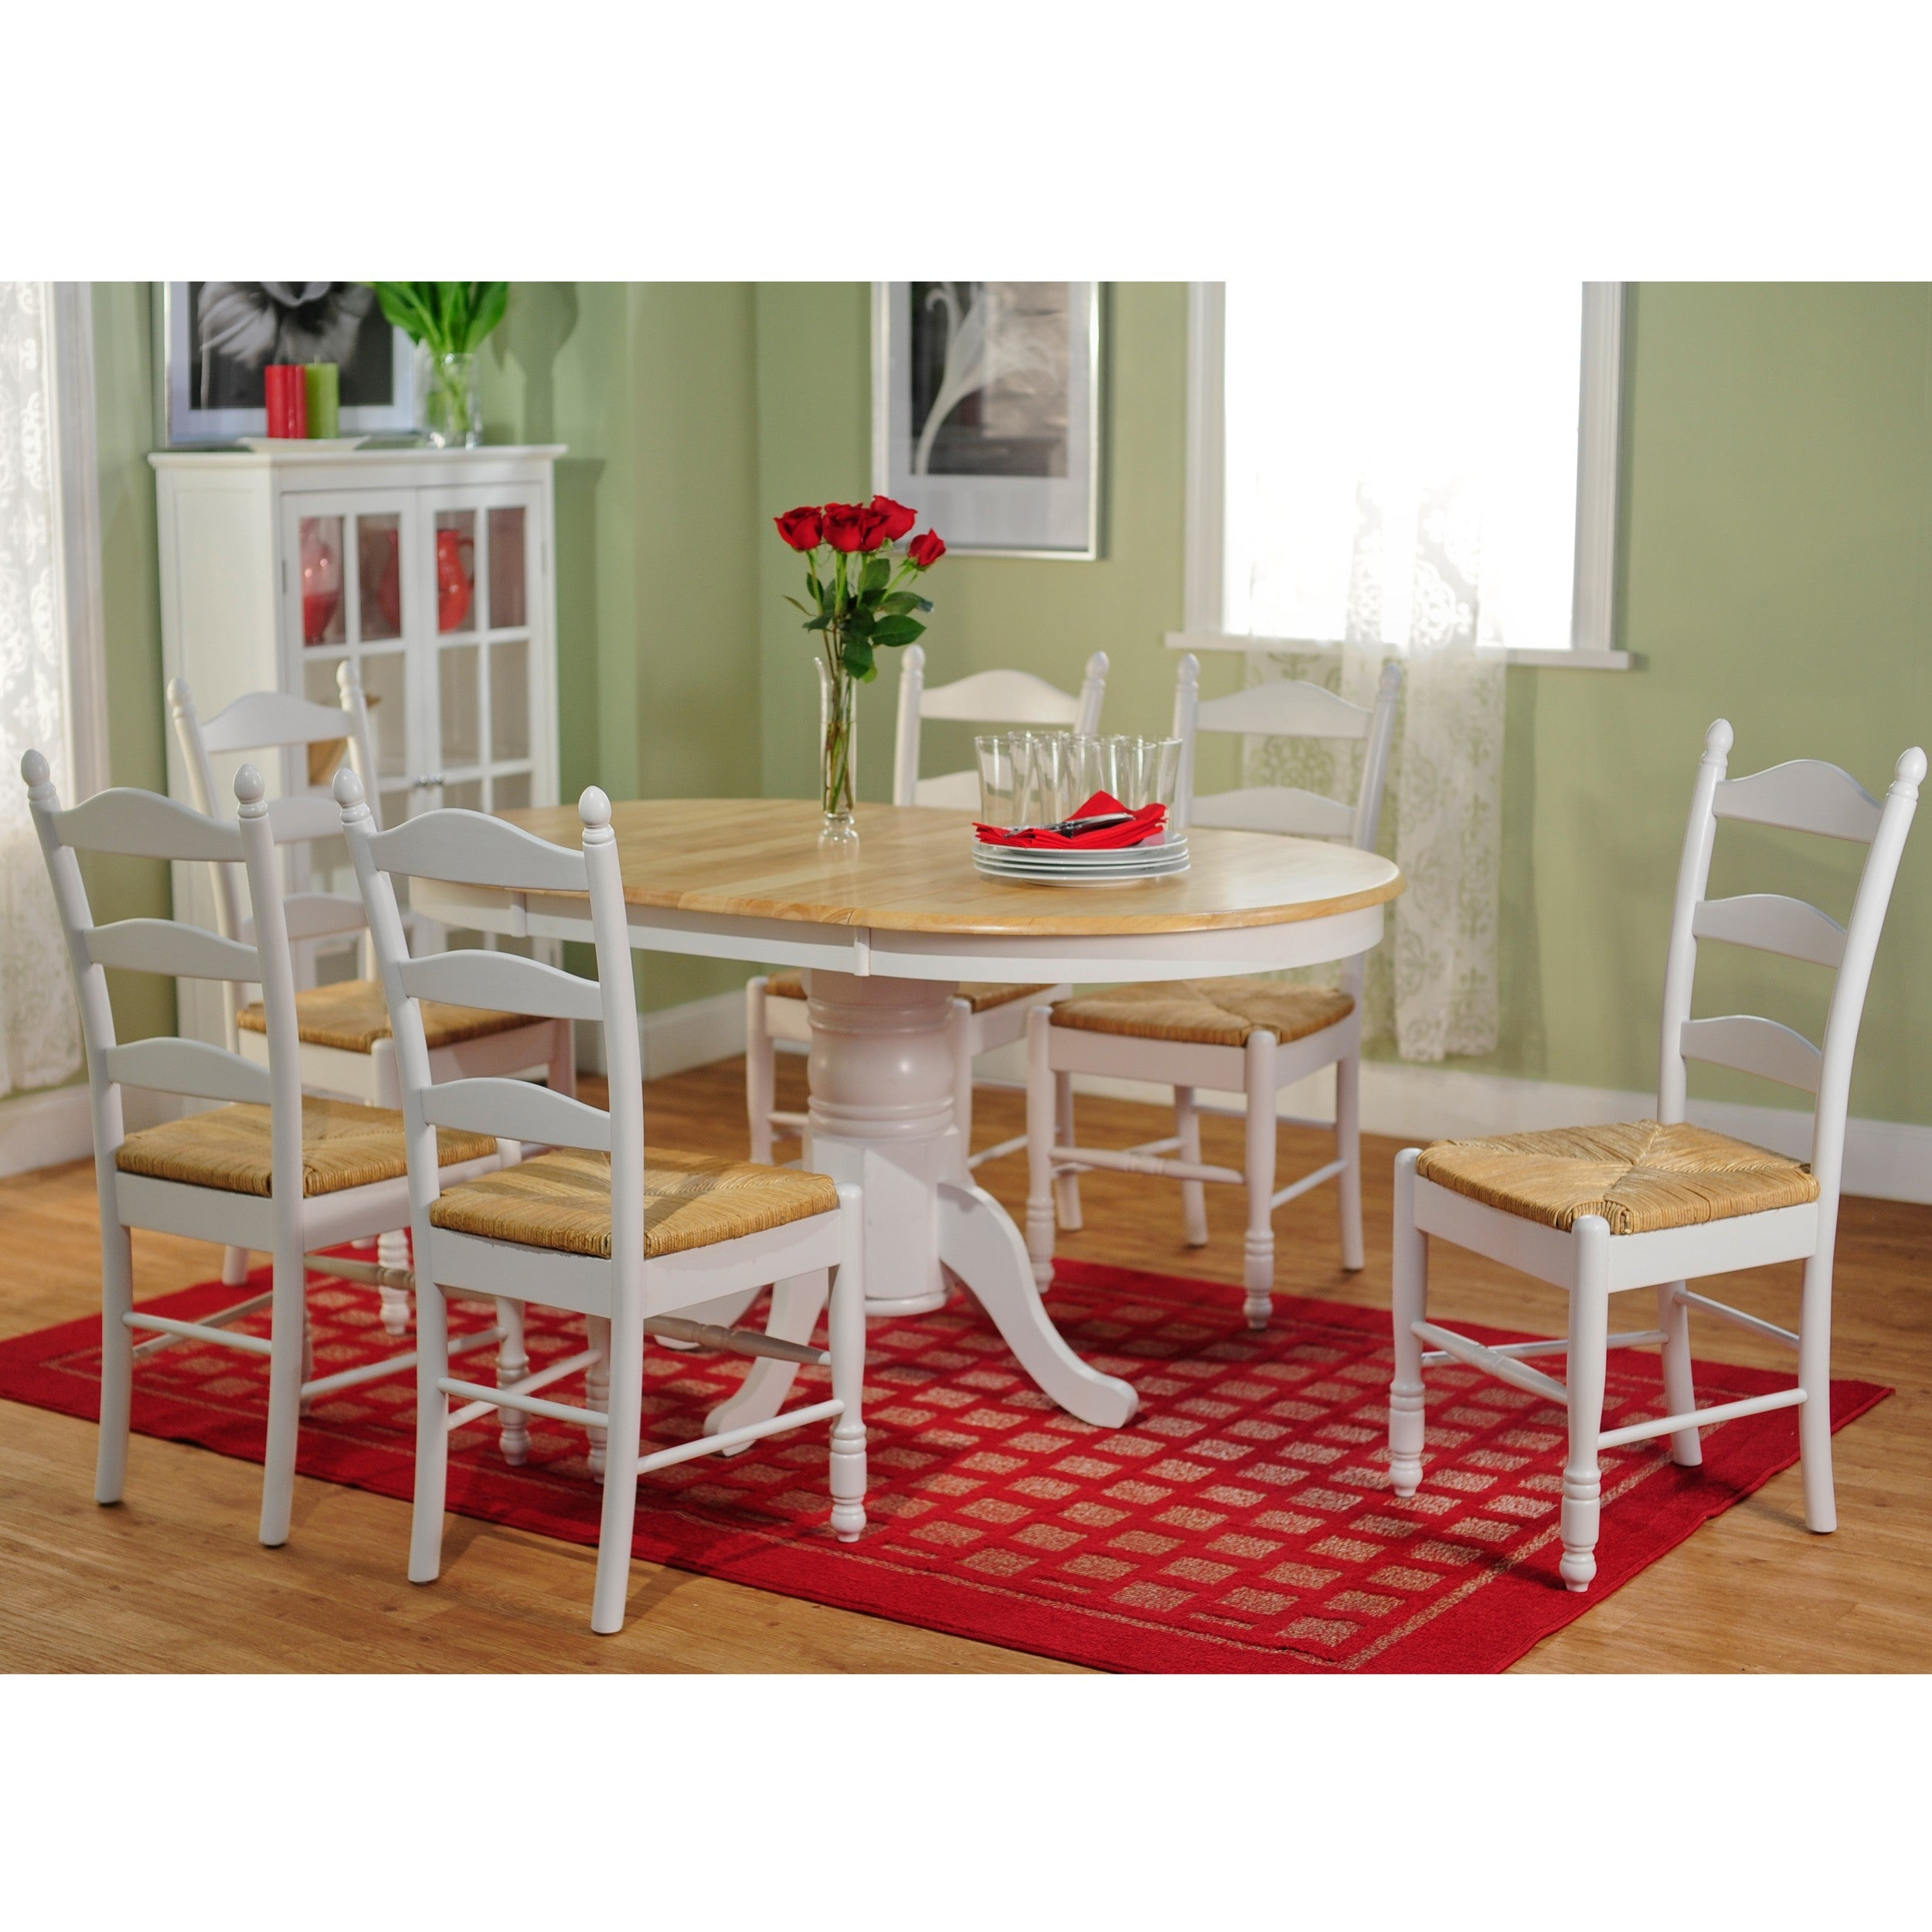 Wondrous Simple Living White Natural 7 Piece Ladderback Dining Set Beutiful Home Inspiration Cosmmahrainfo